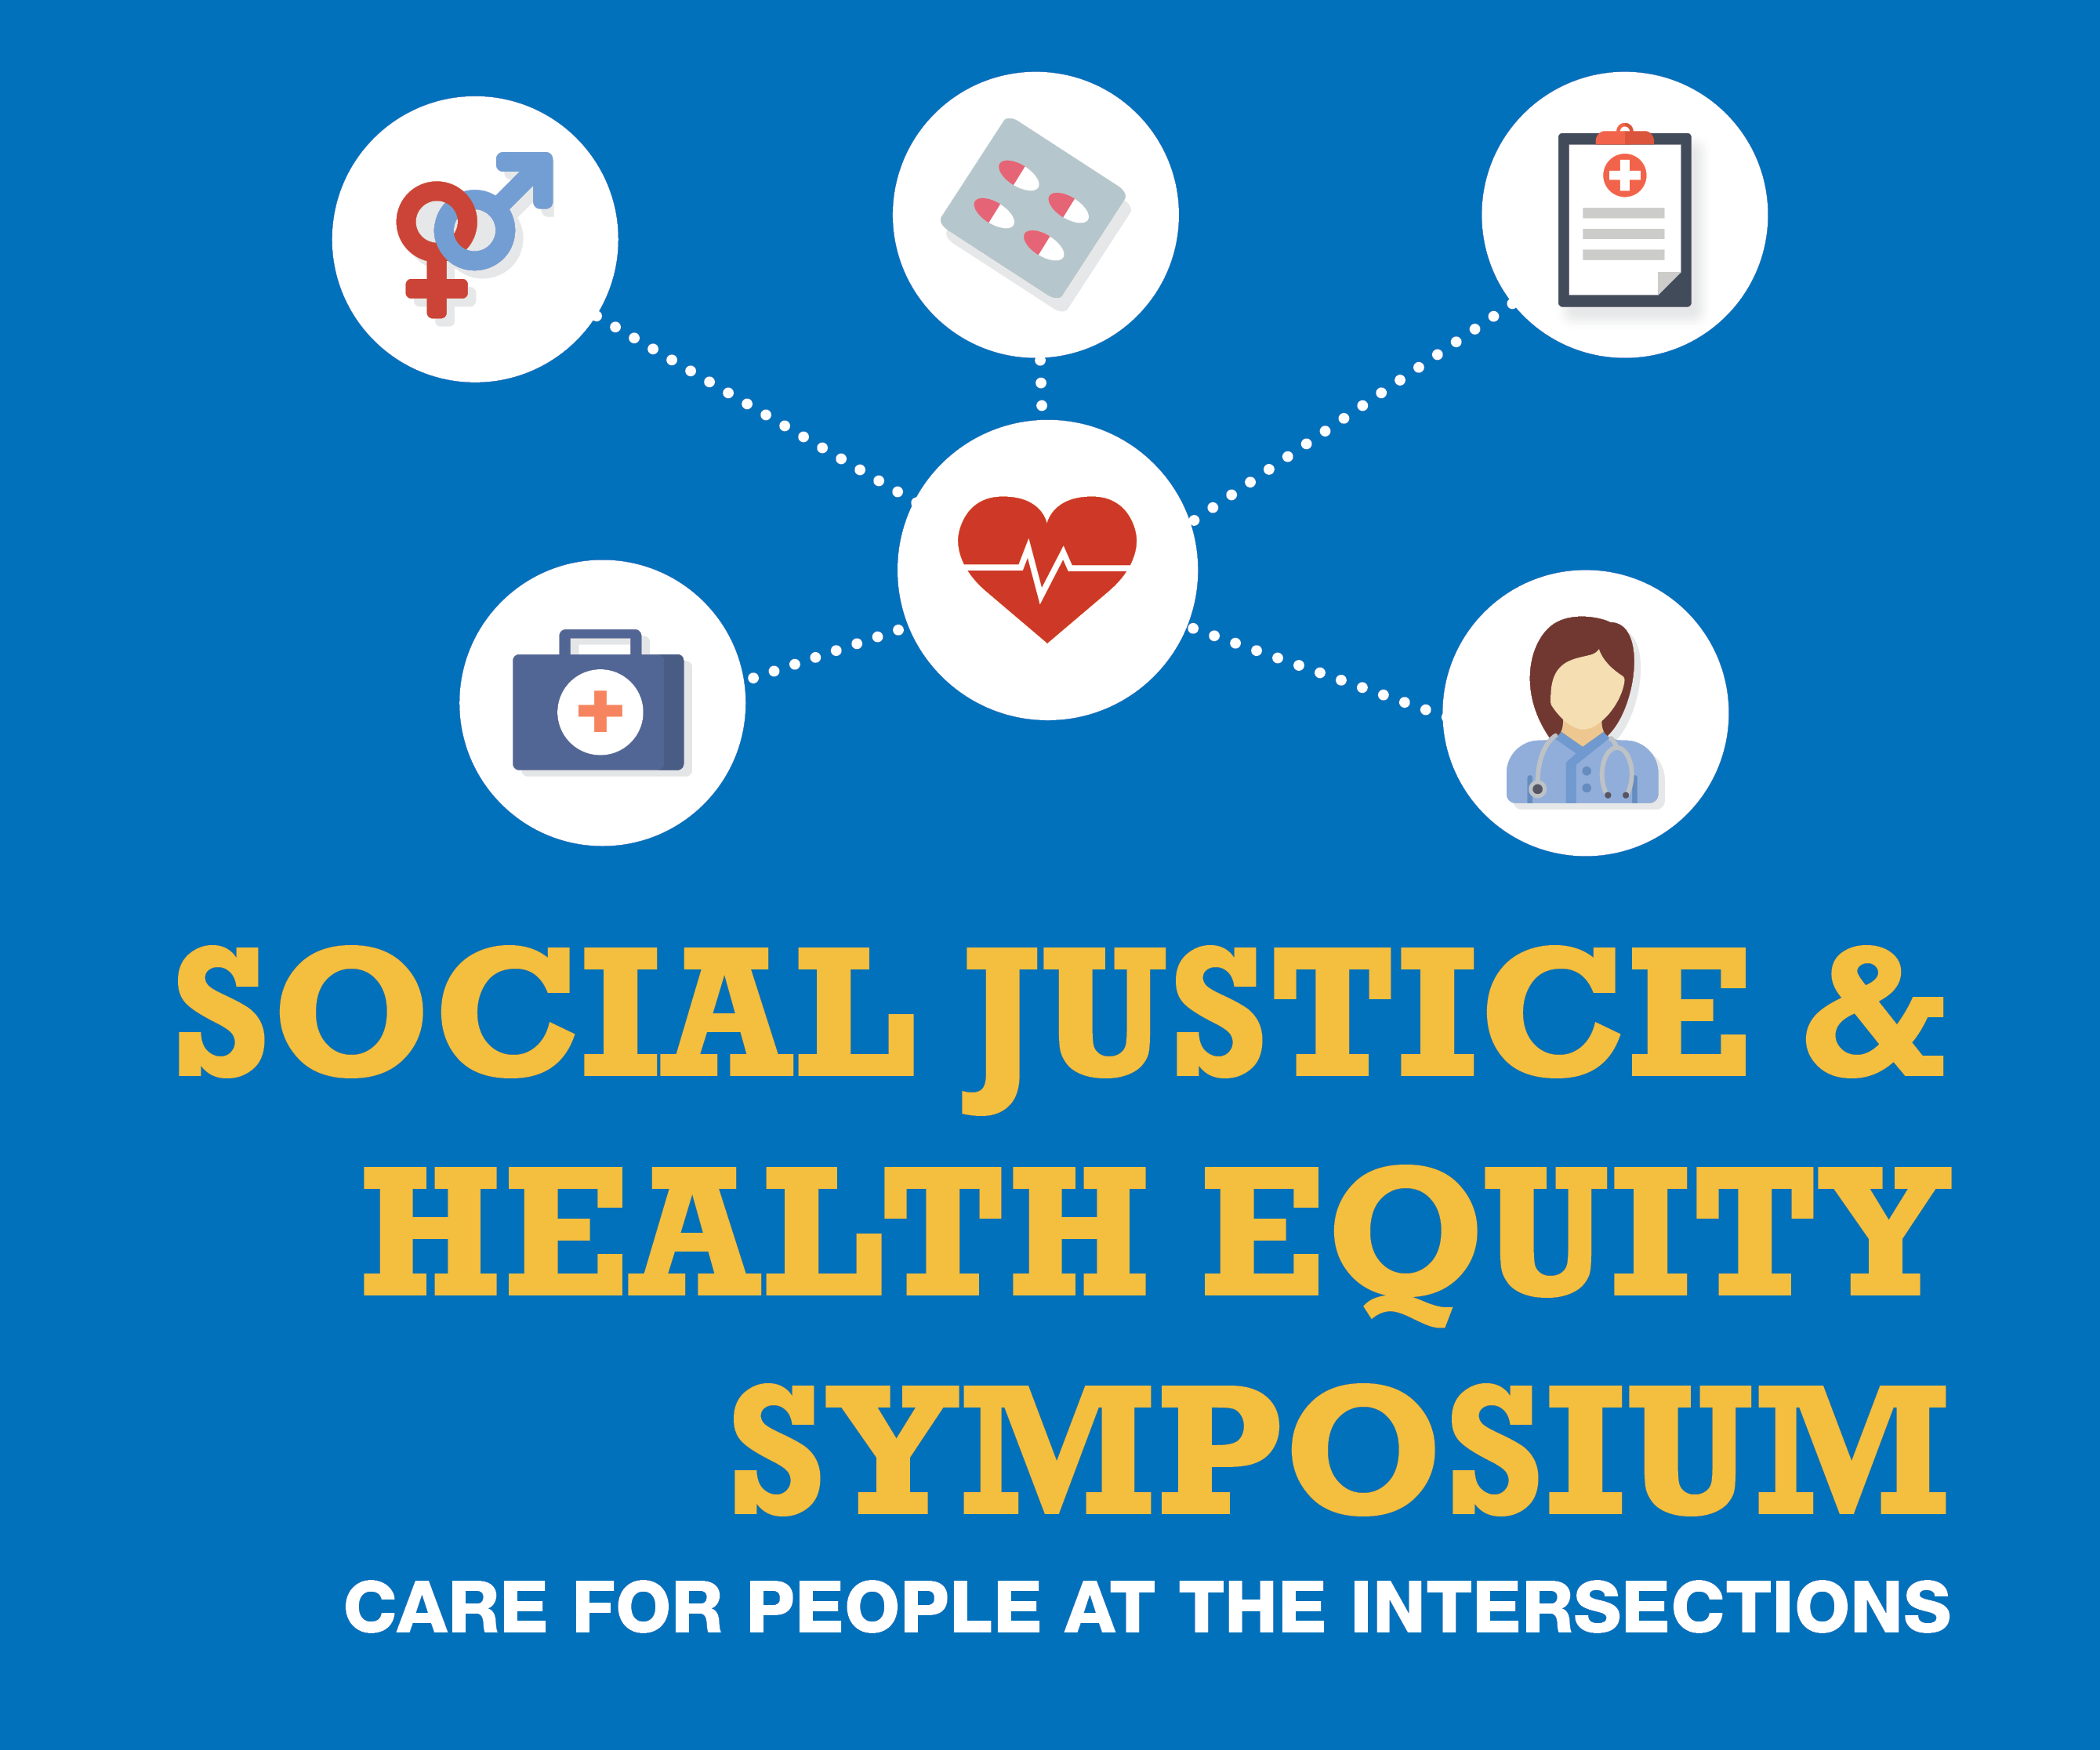 Social Justice and Health Equity: Care for People at the Intersections